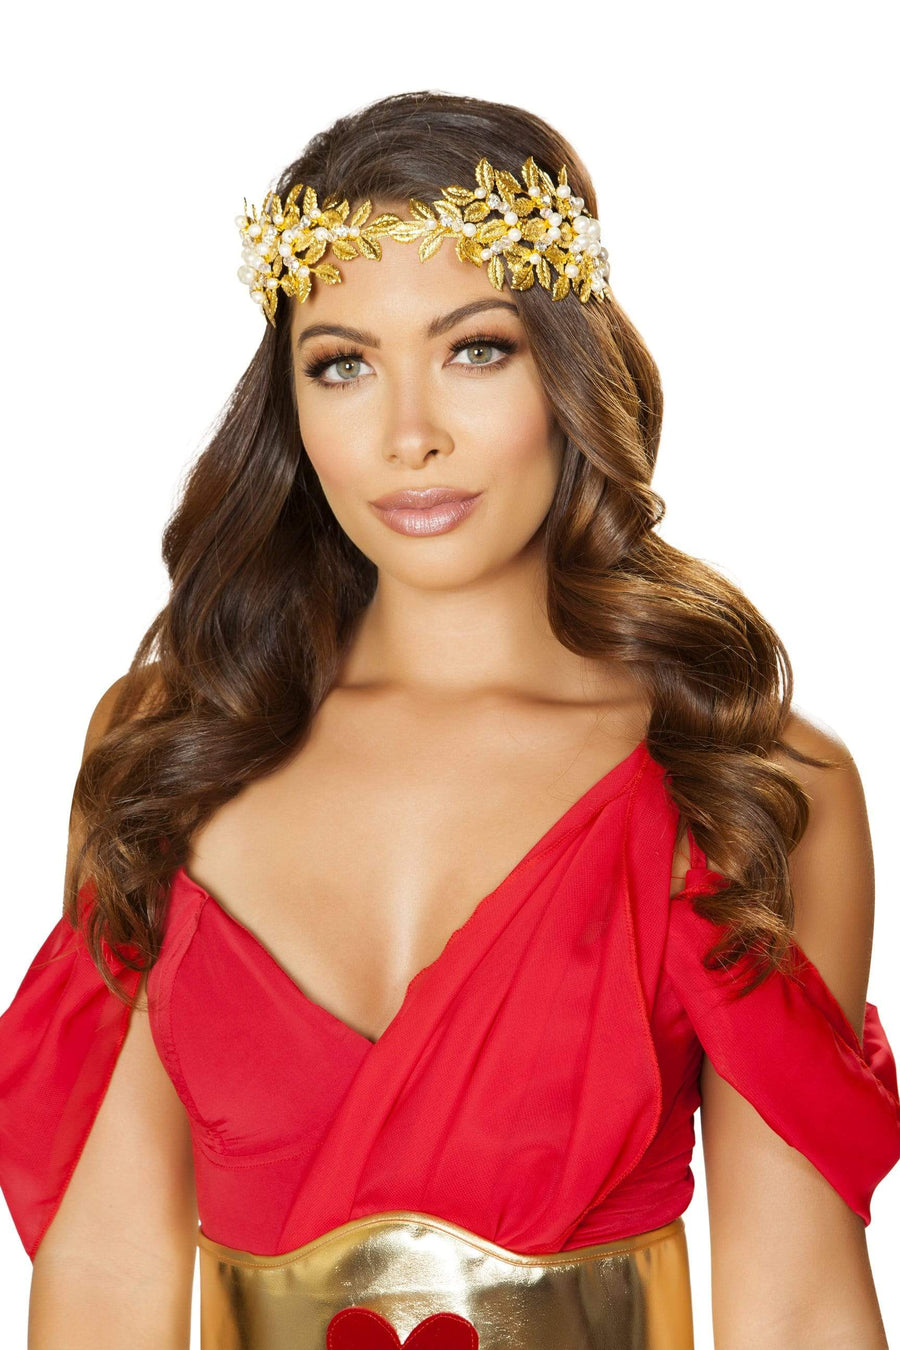 Roma OS / Gold Goddess Headband SHC-4878-S-R Apparel & Accessories > Costumes & Accessories > Costumes